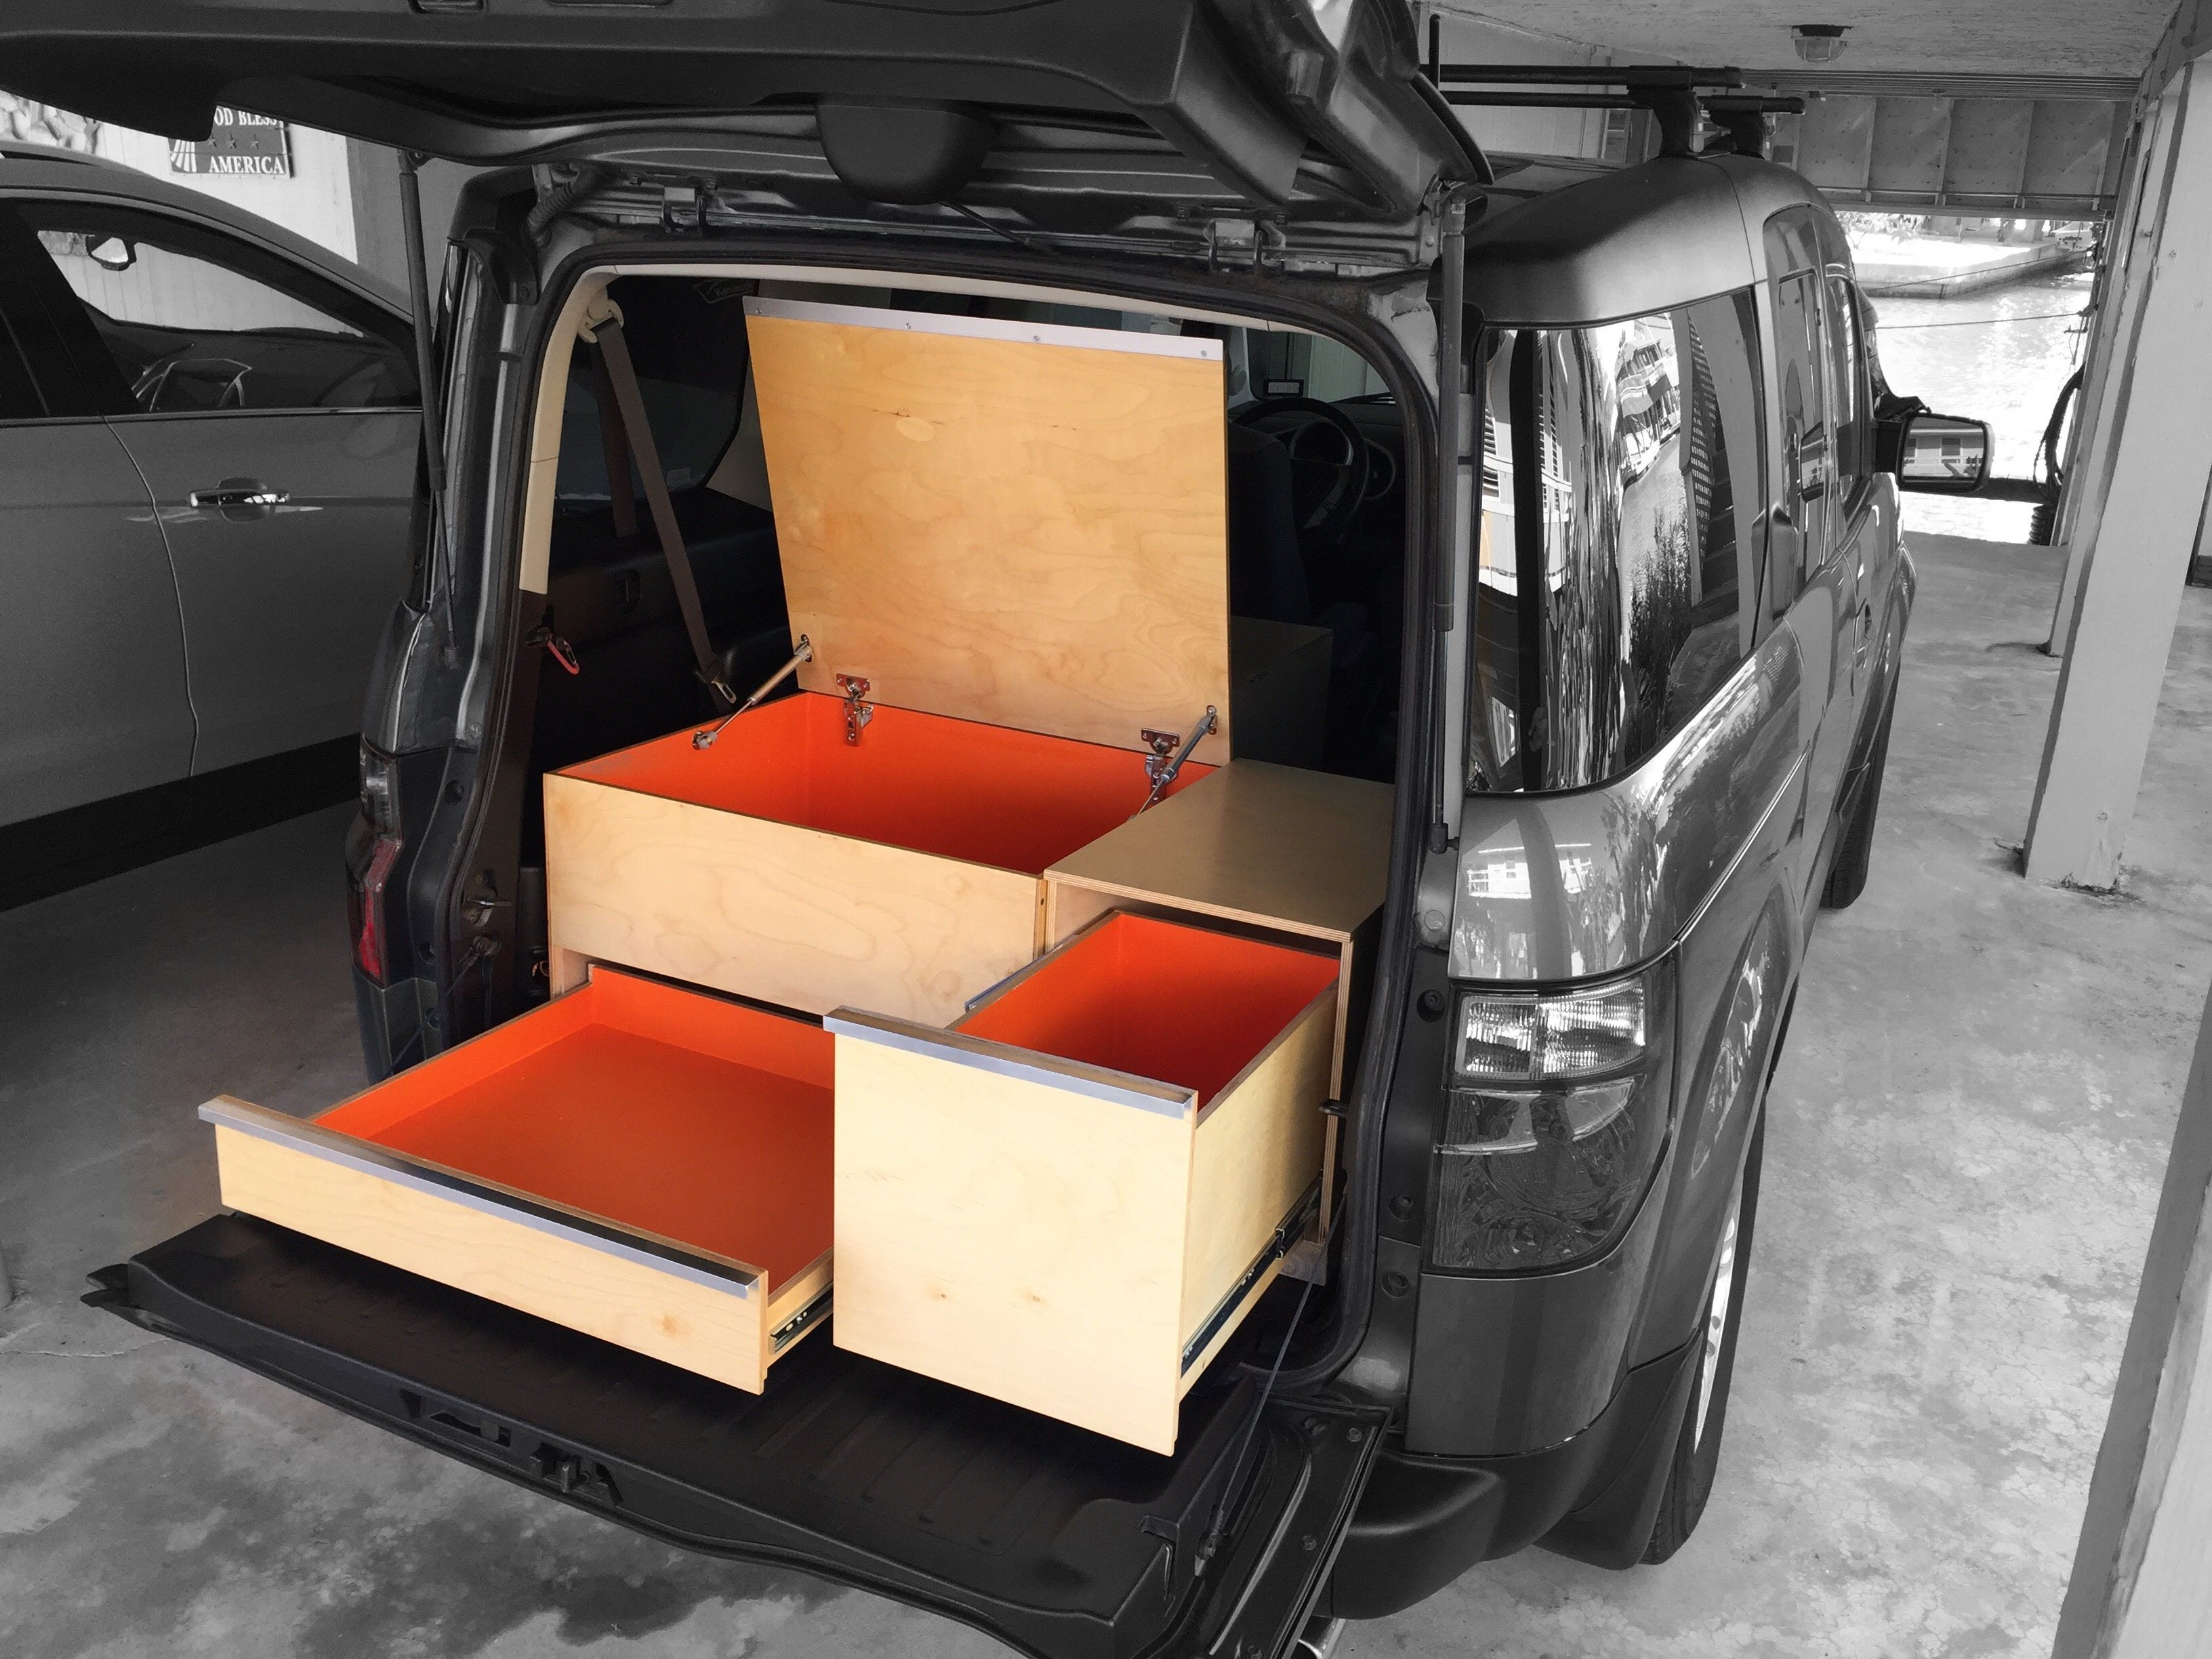 The honda element is ideal for car camping in many ways these plywood boxes maximize